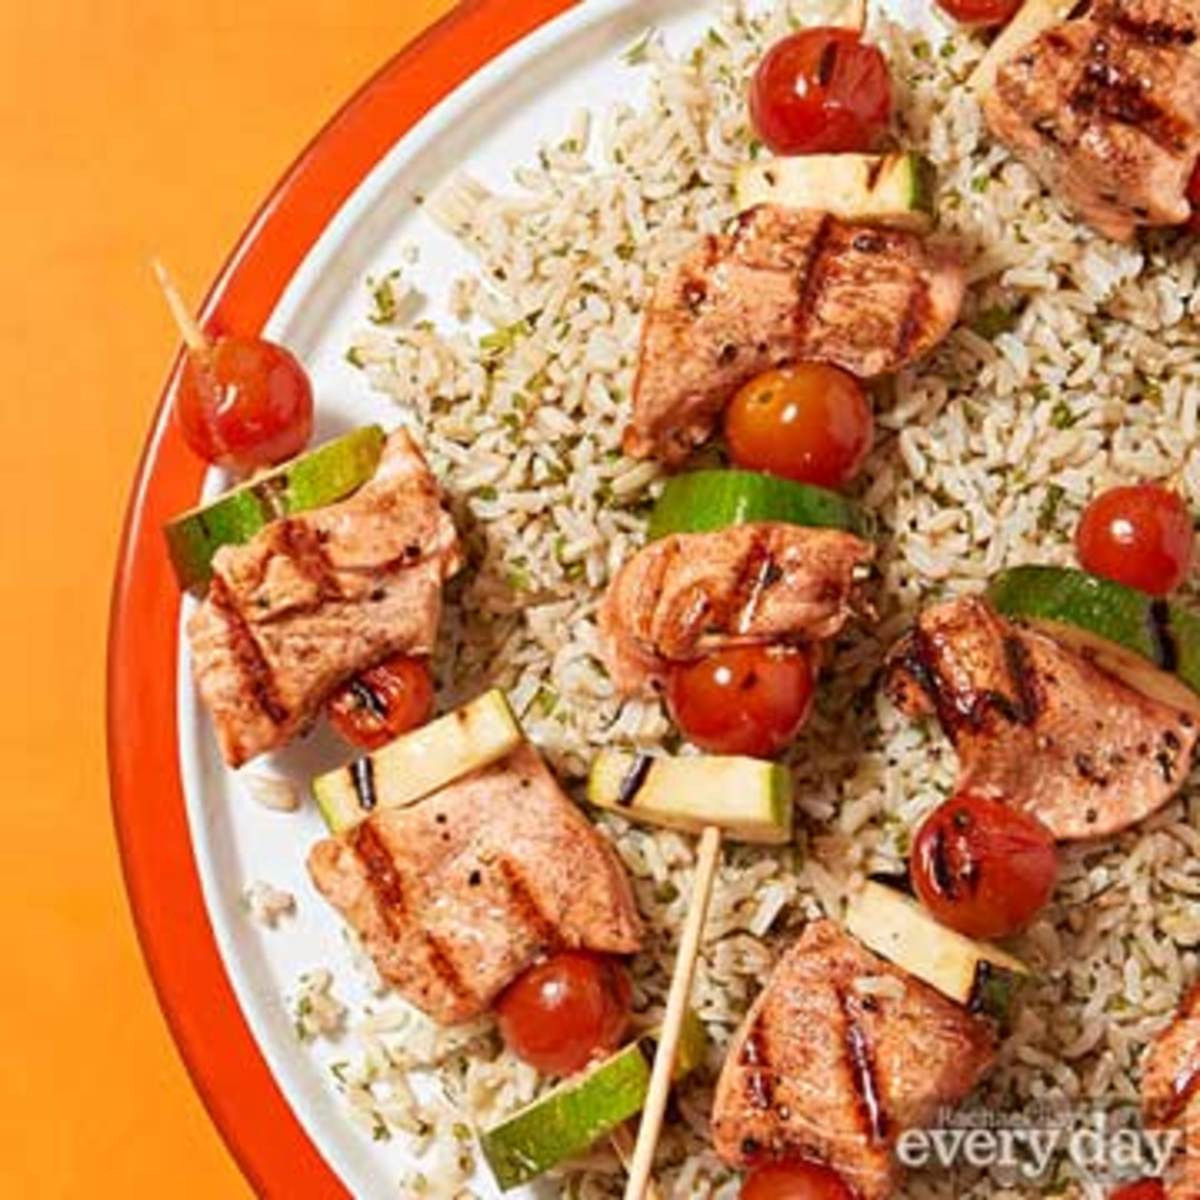 Summer Weeknight Dinners  Simple Summer Weeknight Meals Rachael Ray Every Day